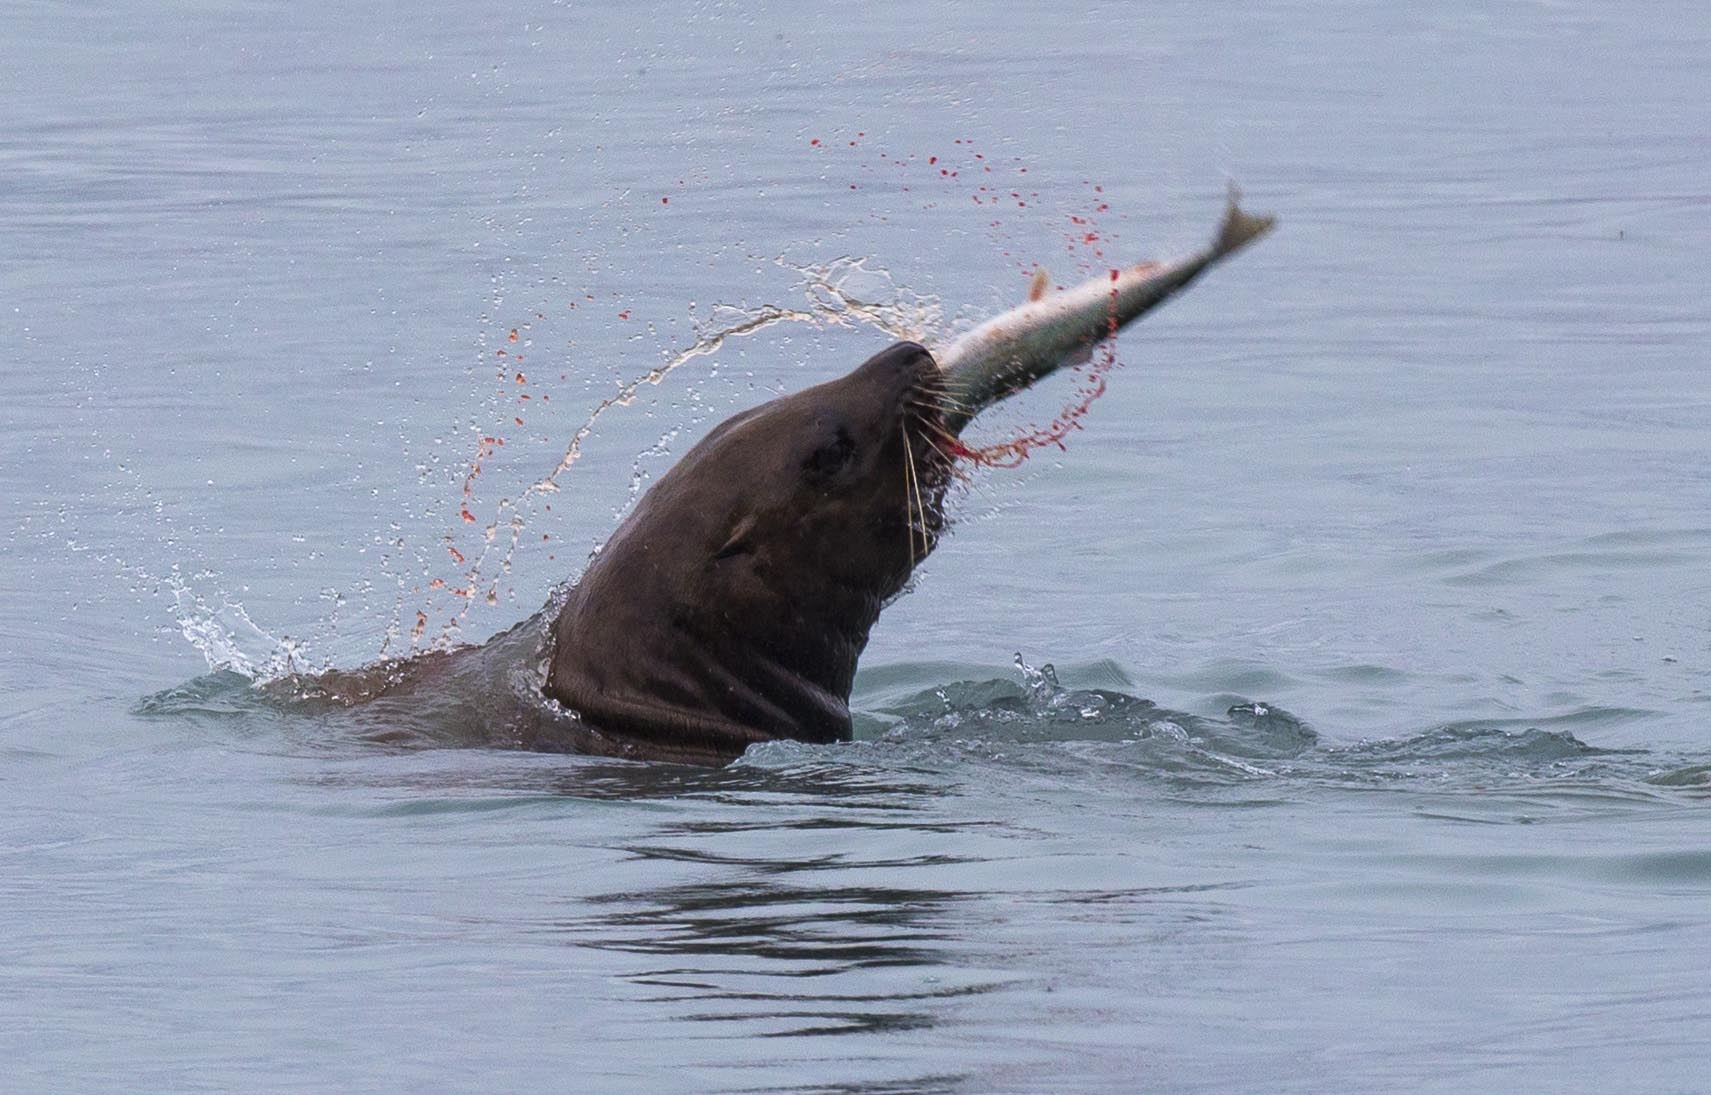 sea lion catching fish